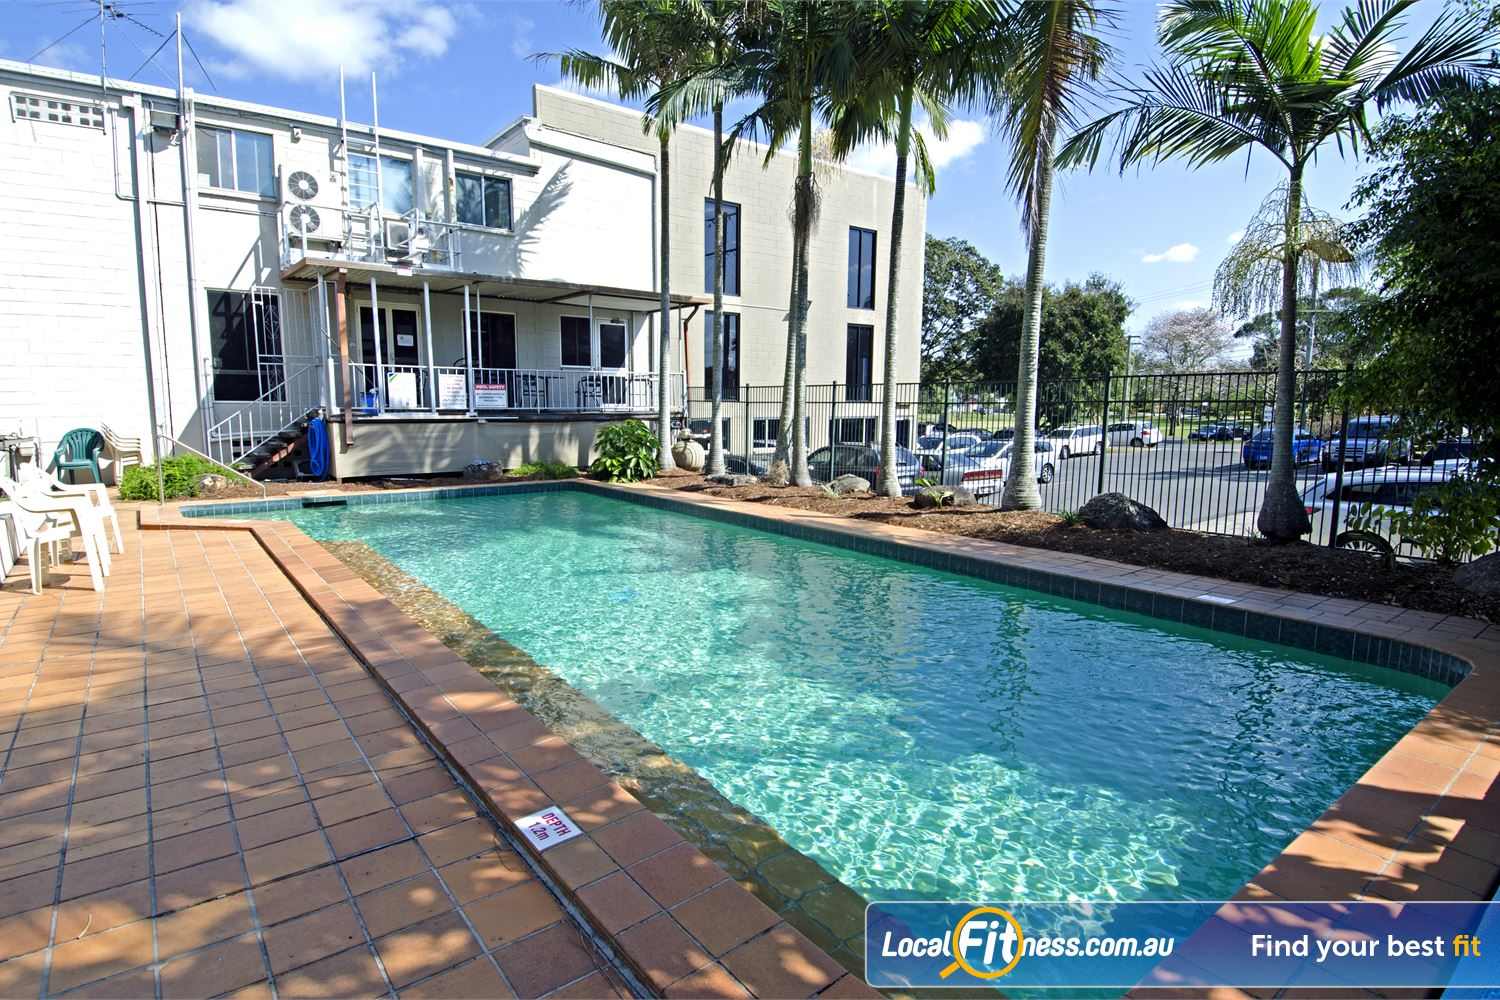 Goodlife Health Clubs Graceville The outdoor Graceville swimming pool.